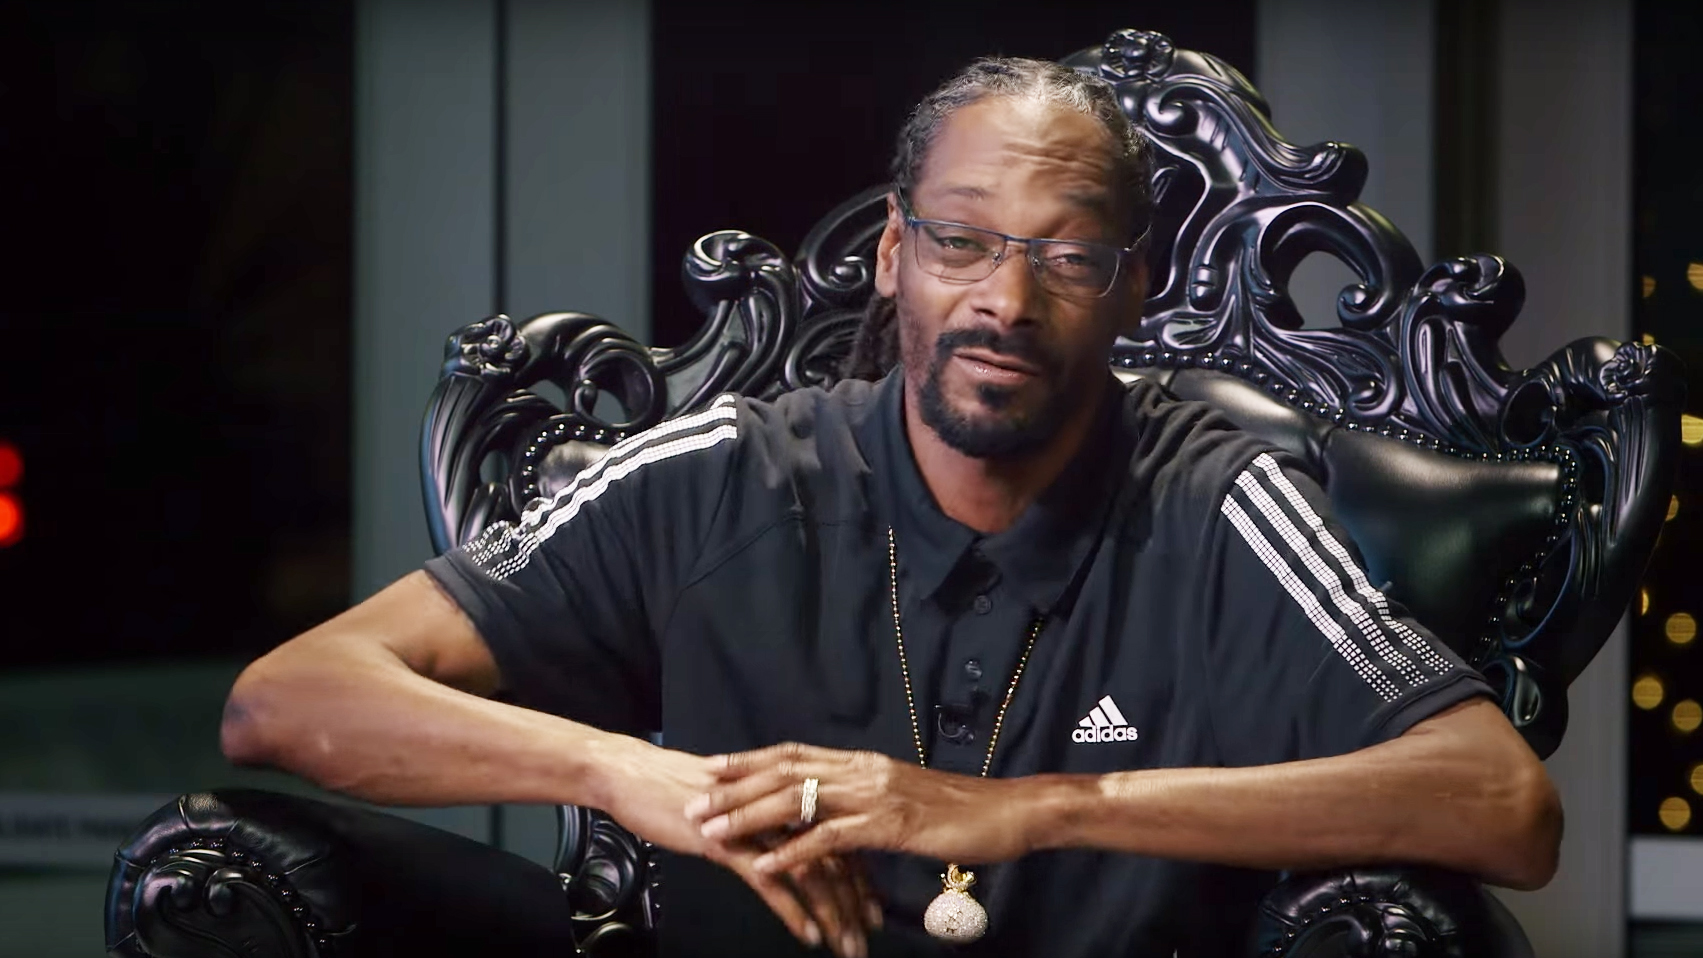 Adidas Gives Snoop Dogg His Own Football Talk Show As A Prelude To Super Bowl 50